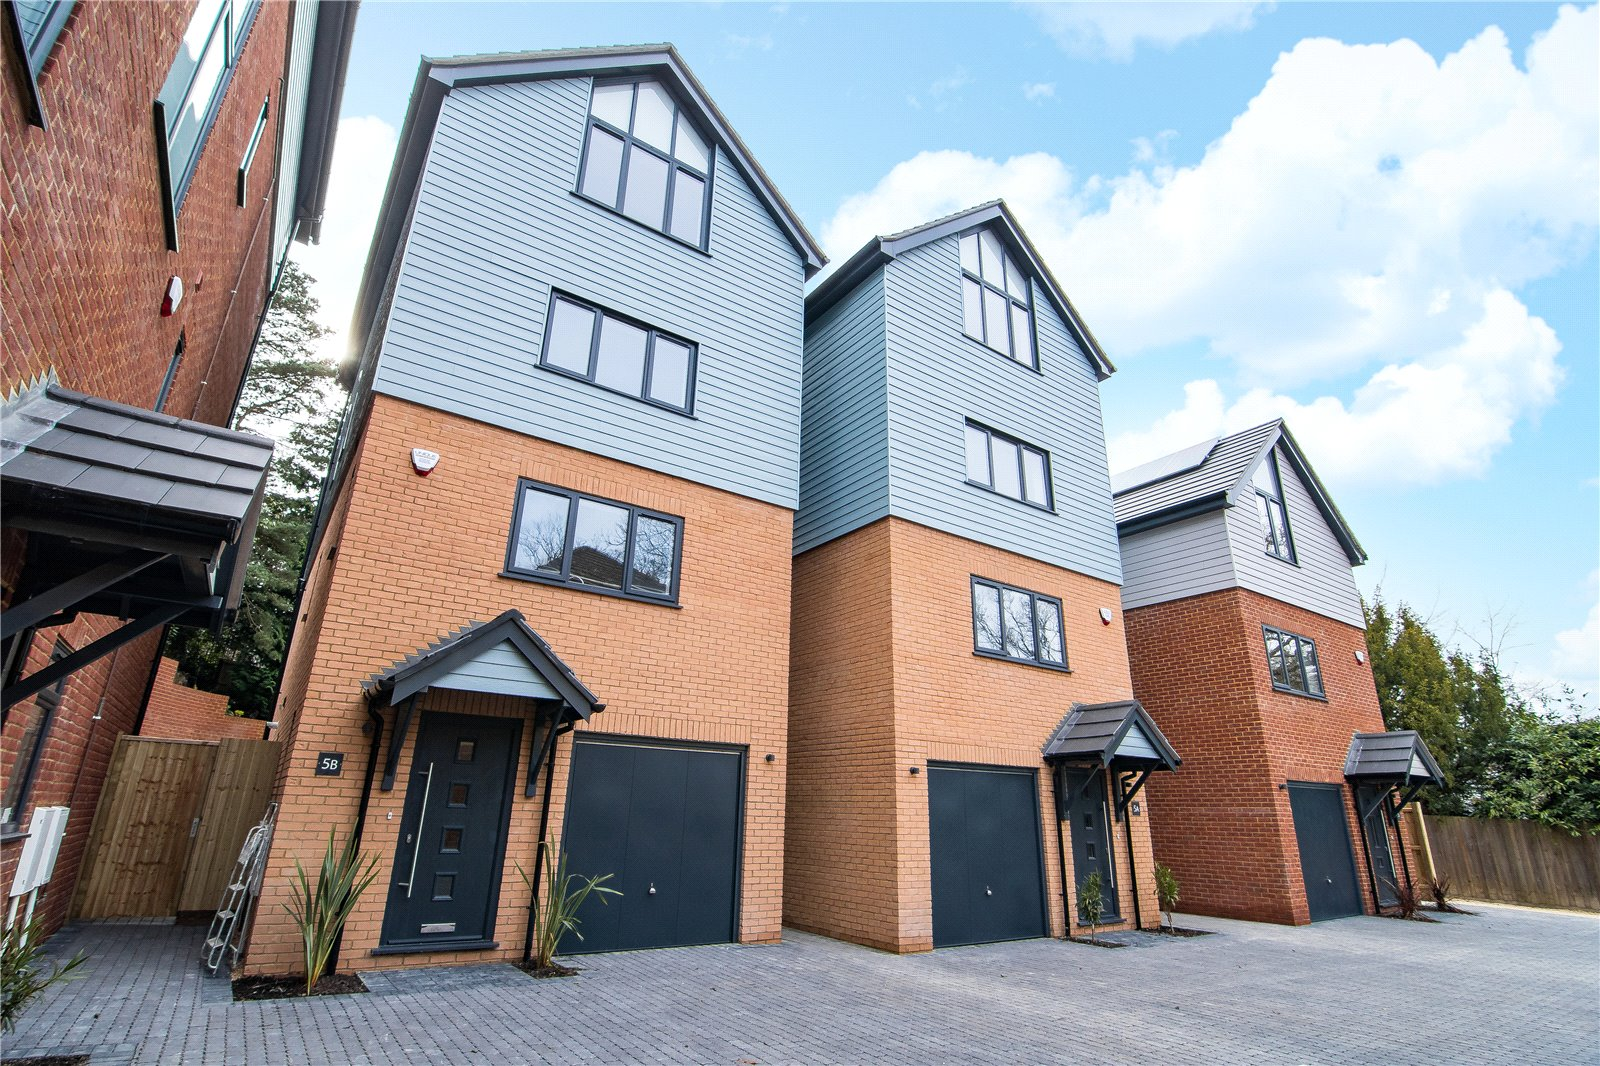 4 bed house to rent in Ledgard Close, Ashley Cross, BH14